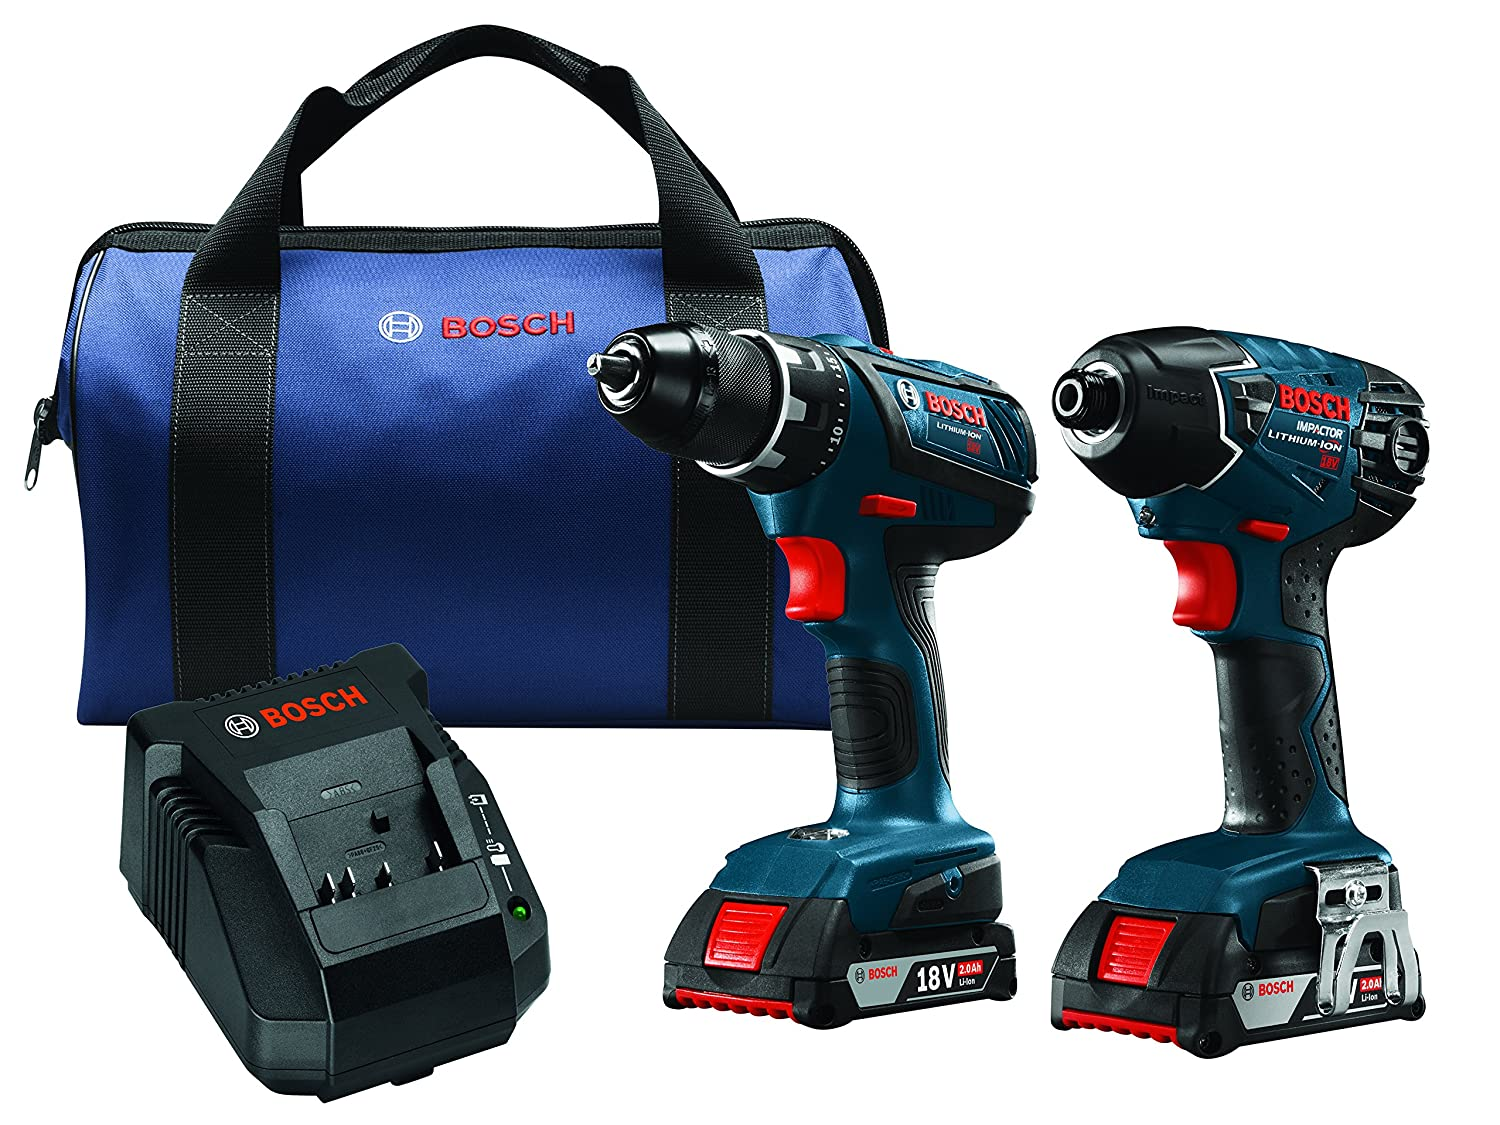 916dGdvOlqL._SL1500_ The Best Impact/Drill Combos Reviews